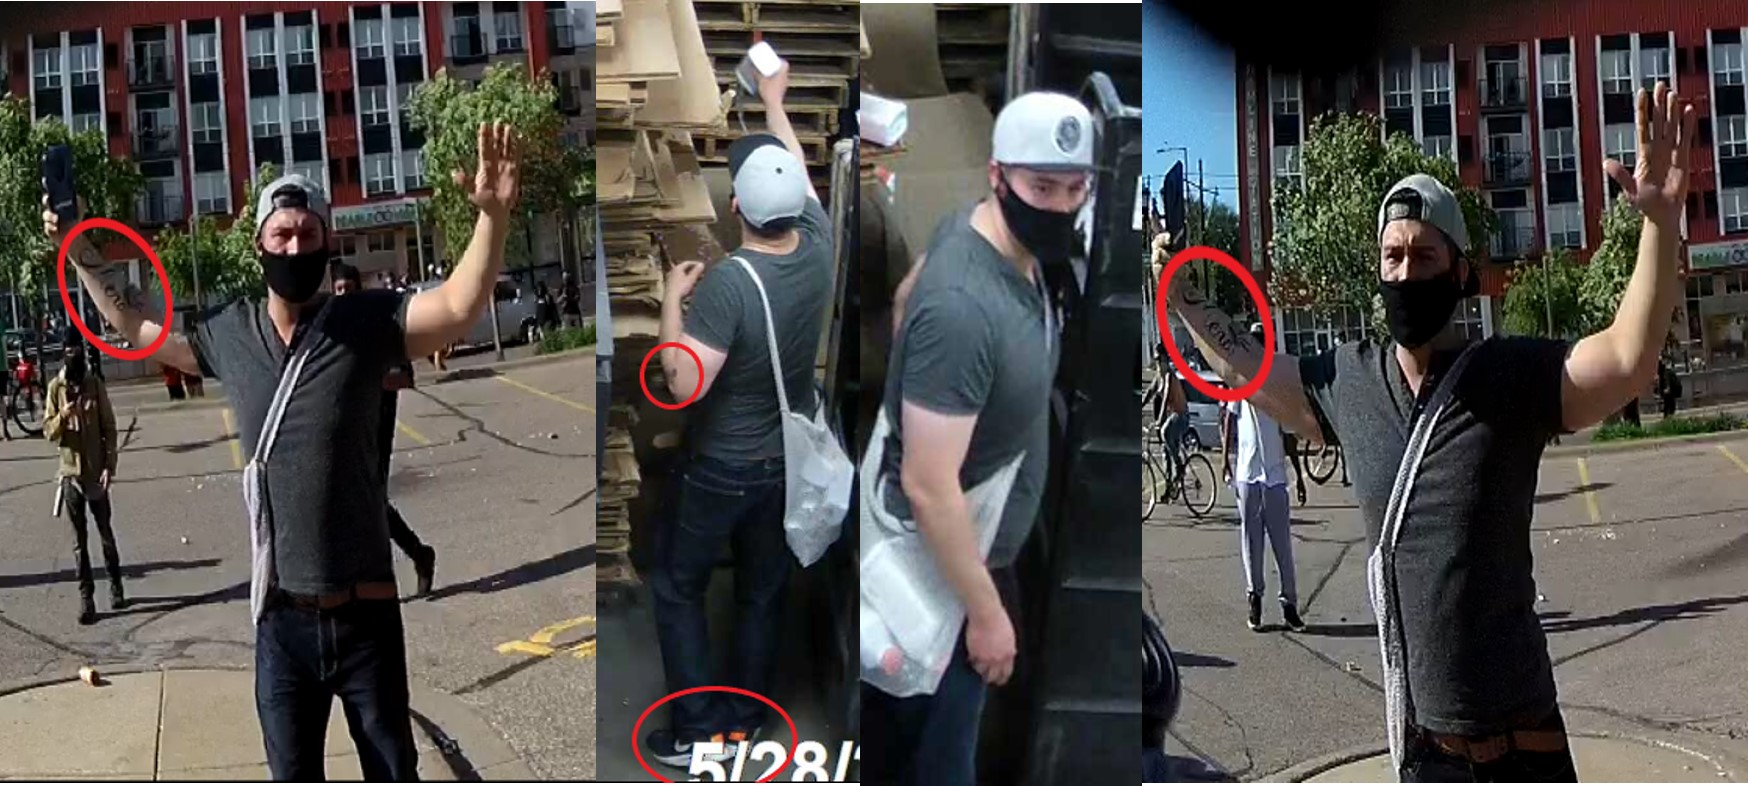 Suspected arsonist wearing a white cap, blue jeans, gray t-shirt, meidum build, birthmark on the back upper arm, tattoo on forearm, and a black face covering hanging off his face.